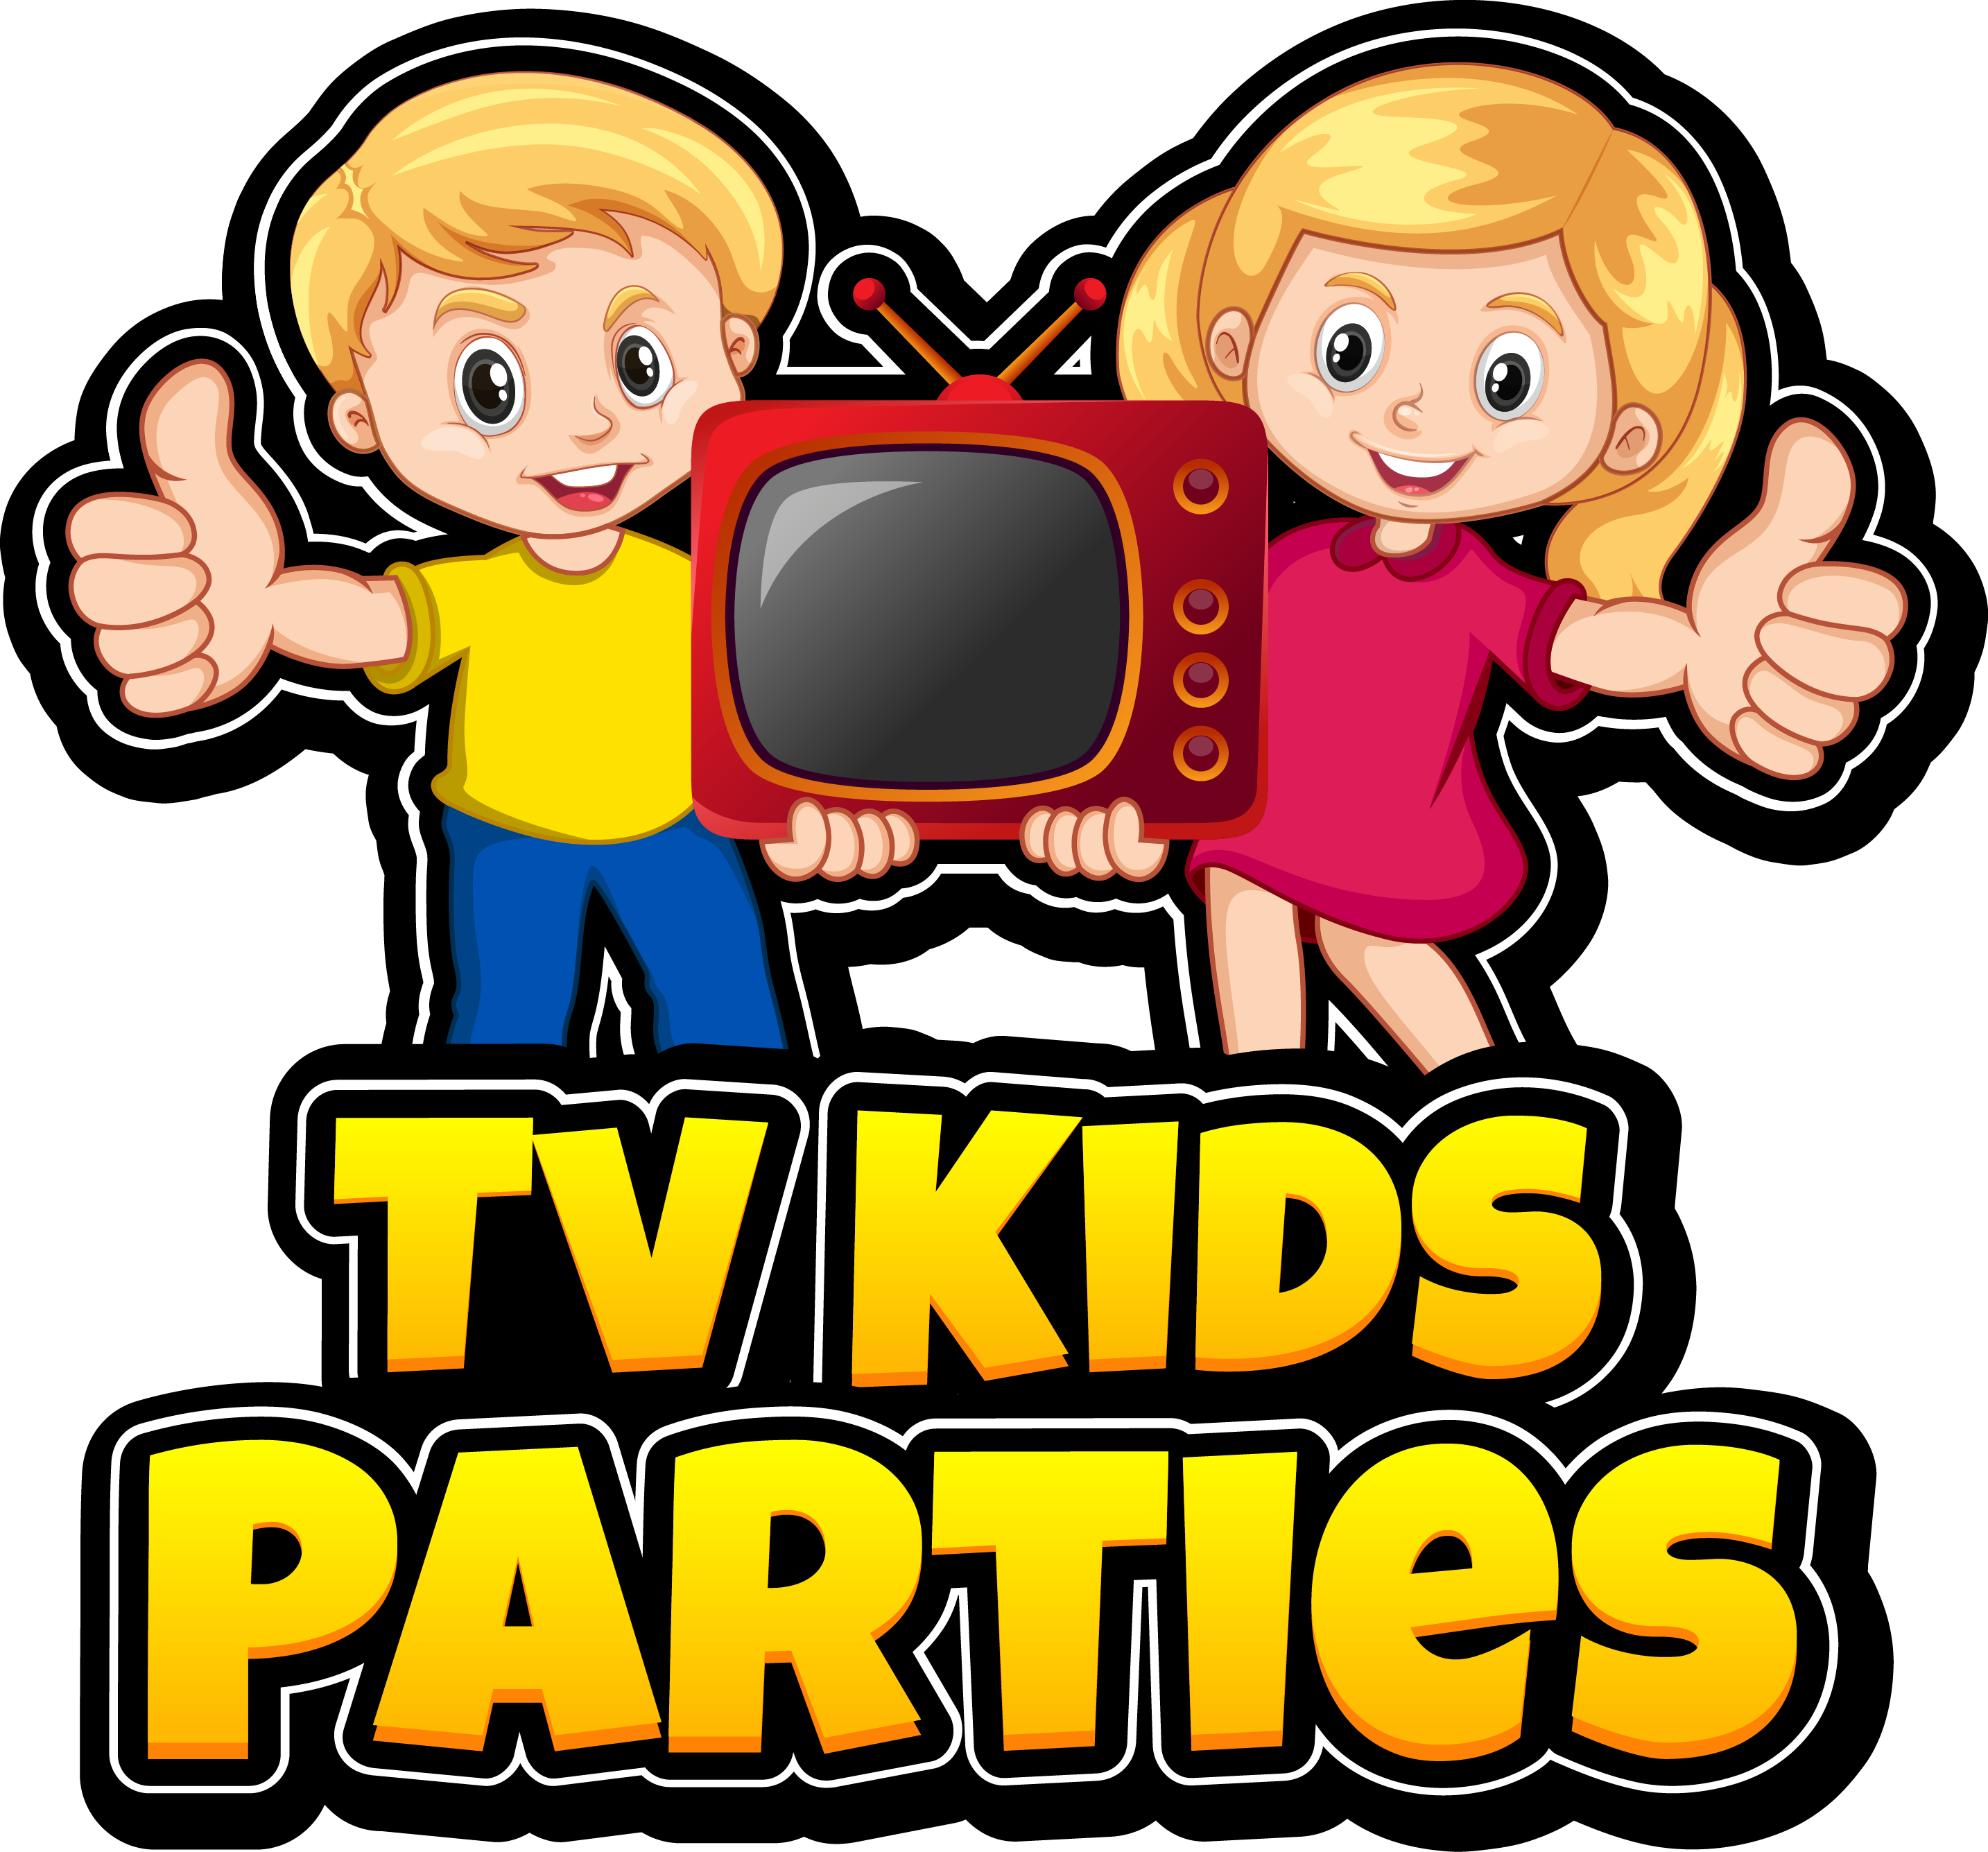 TV Kids Parties